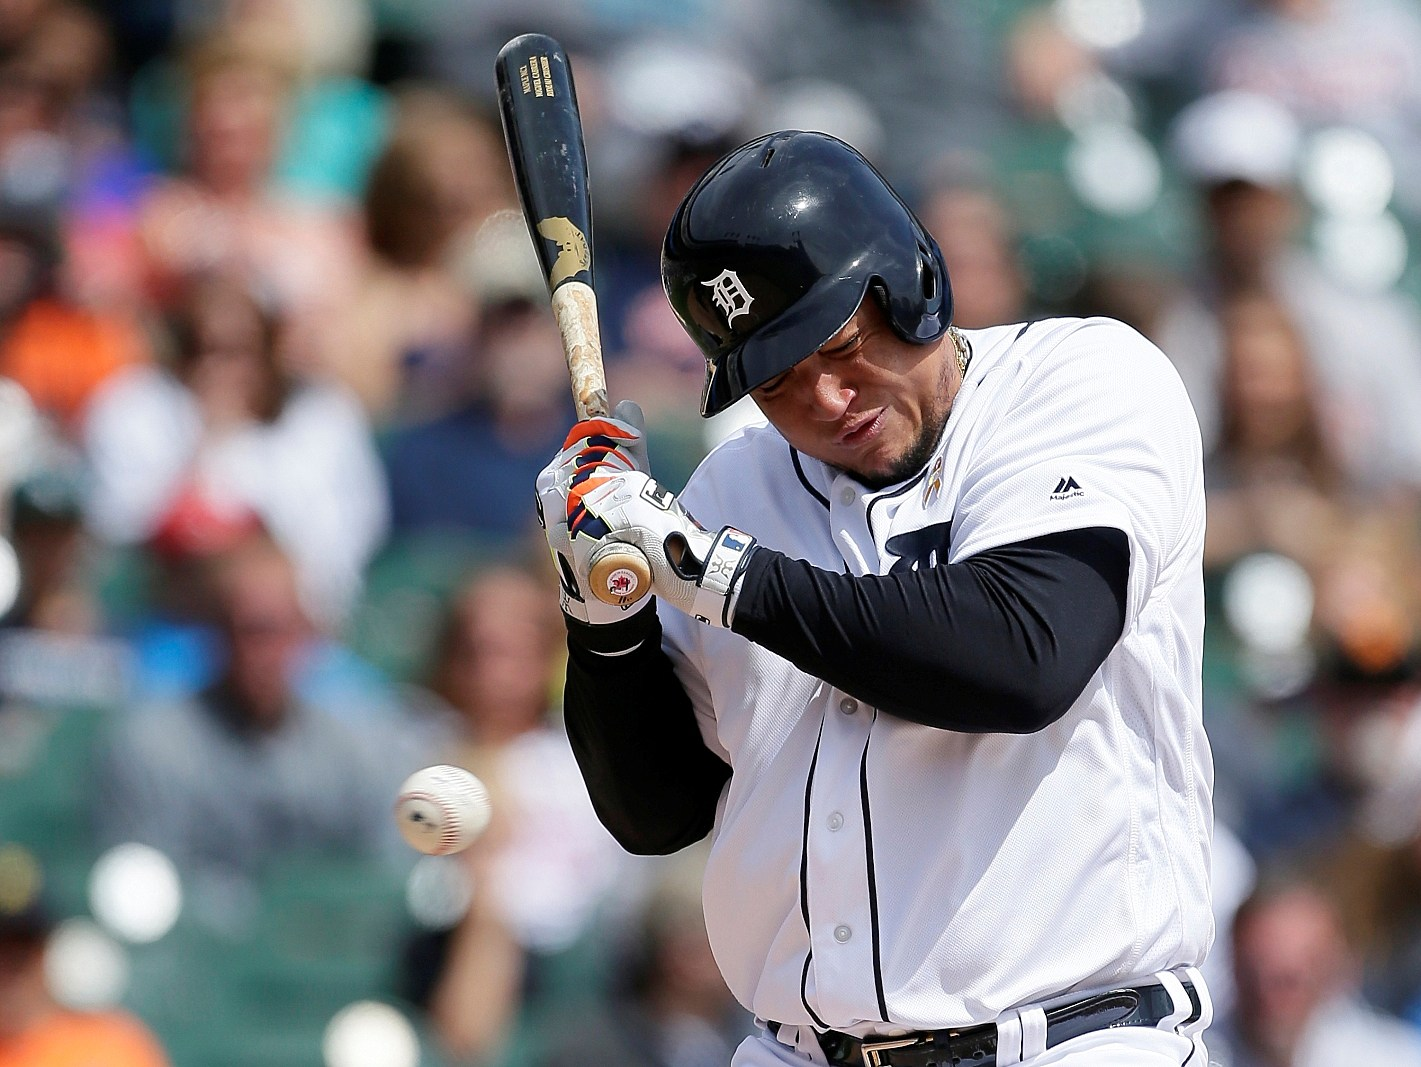 Tigers Lose to Indians in Double Header